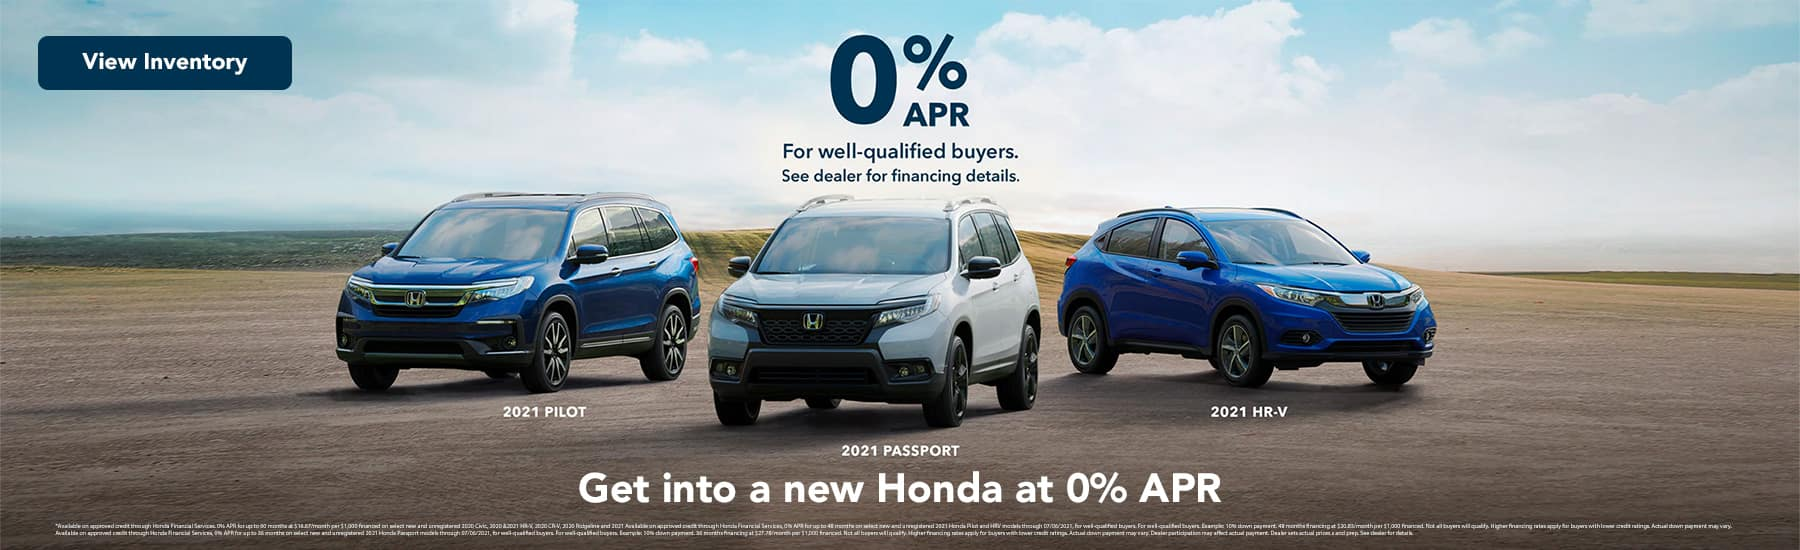 0% APR For well-qualified buyers., Get into a new Honda at 0% APR.